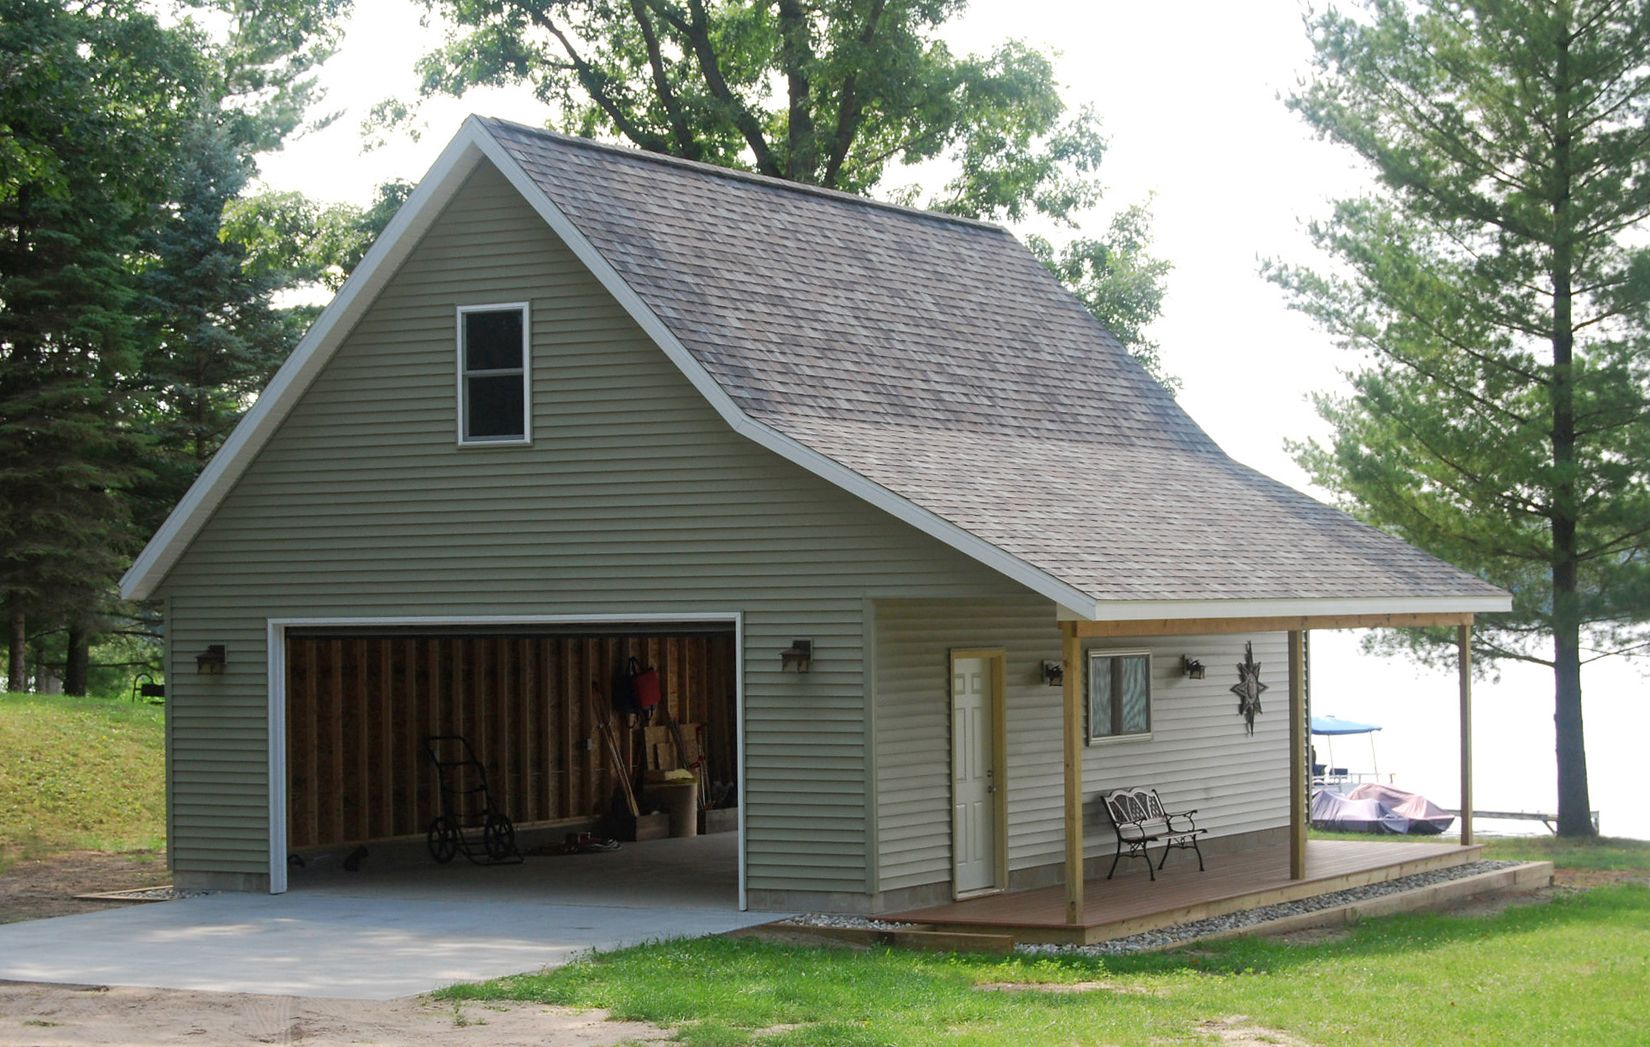 Pole barn garage plans welcome to jb custom homes where for Garage plans with loft